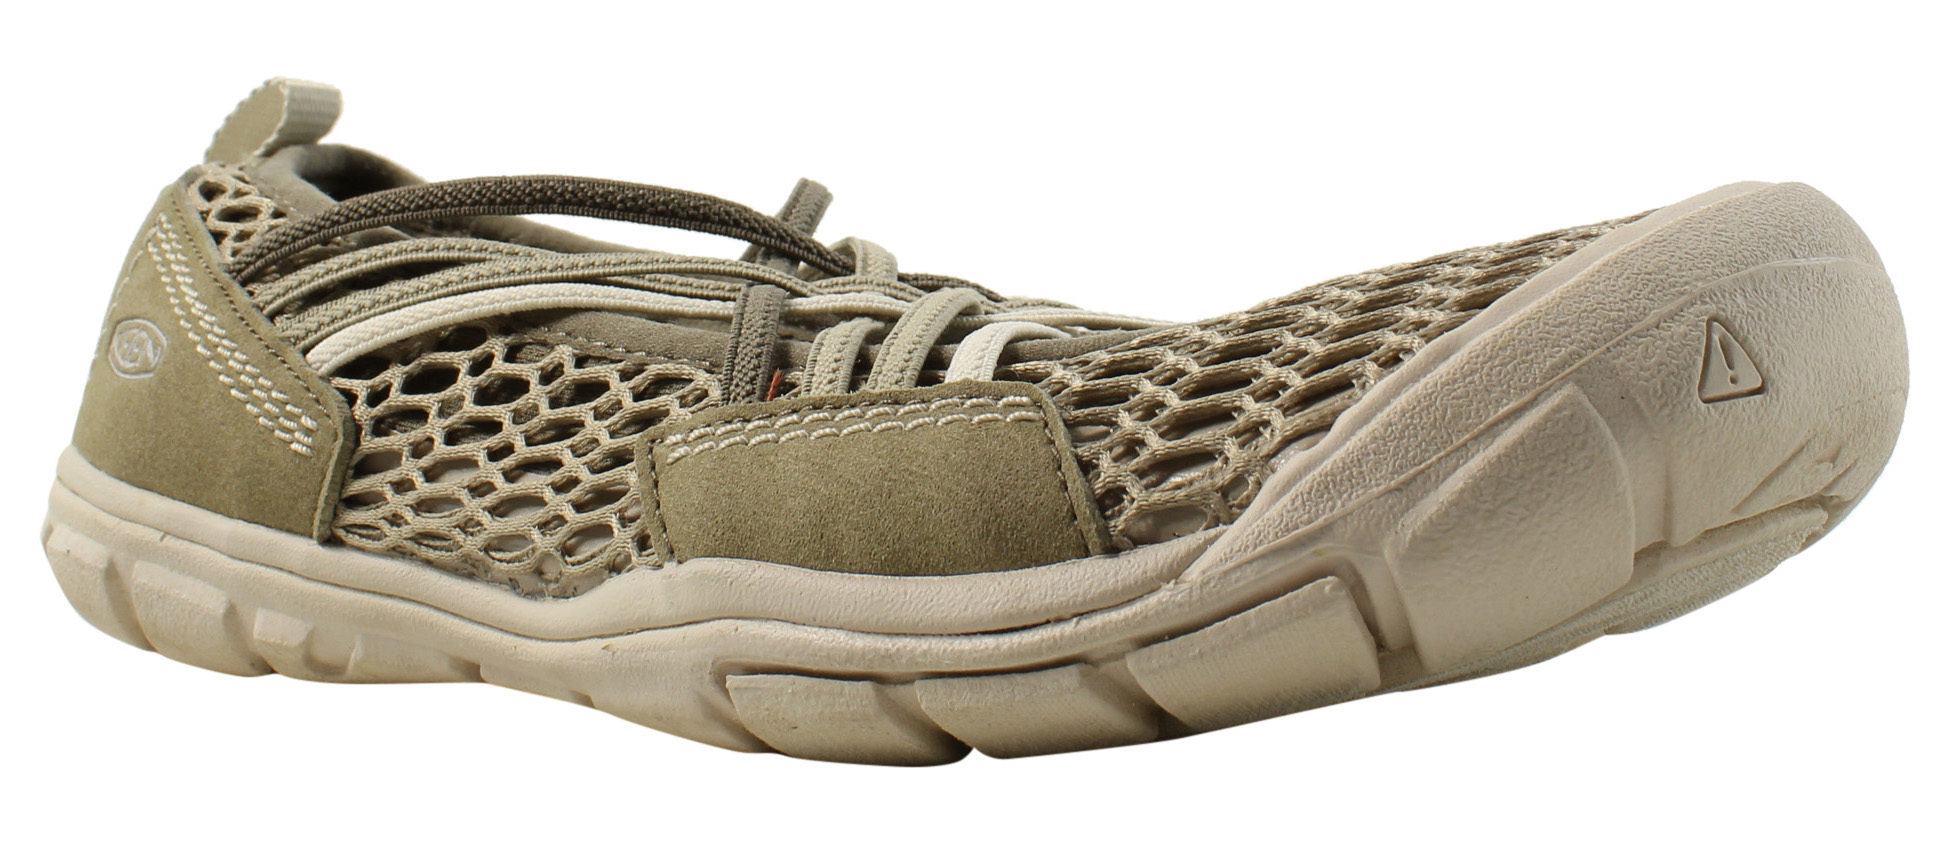 KEEN femmes  Cnx Zephyr Brindle Trail / Hiking  Chaussures